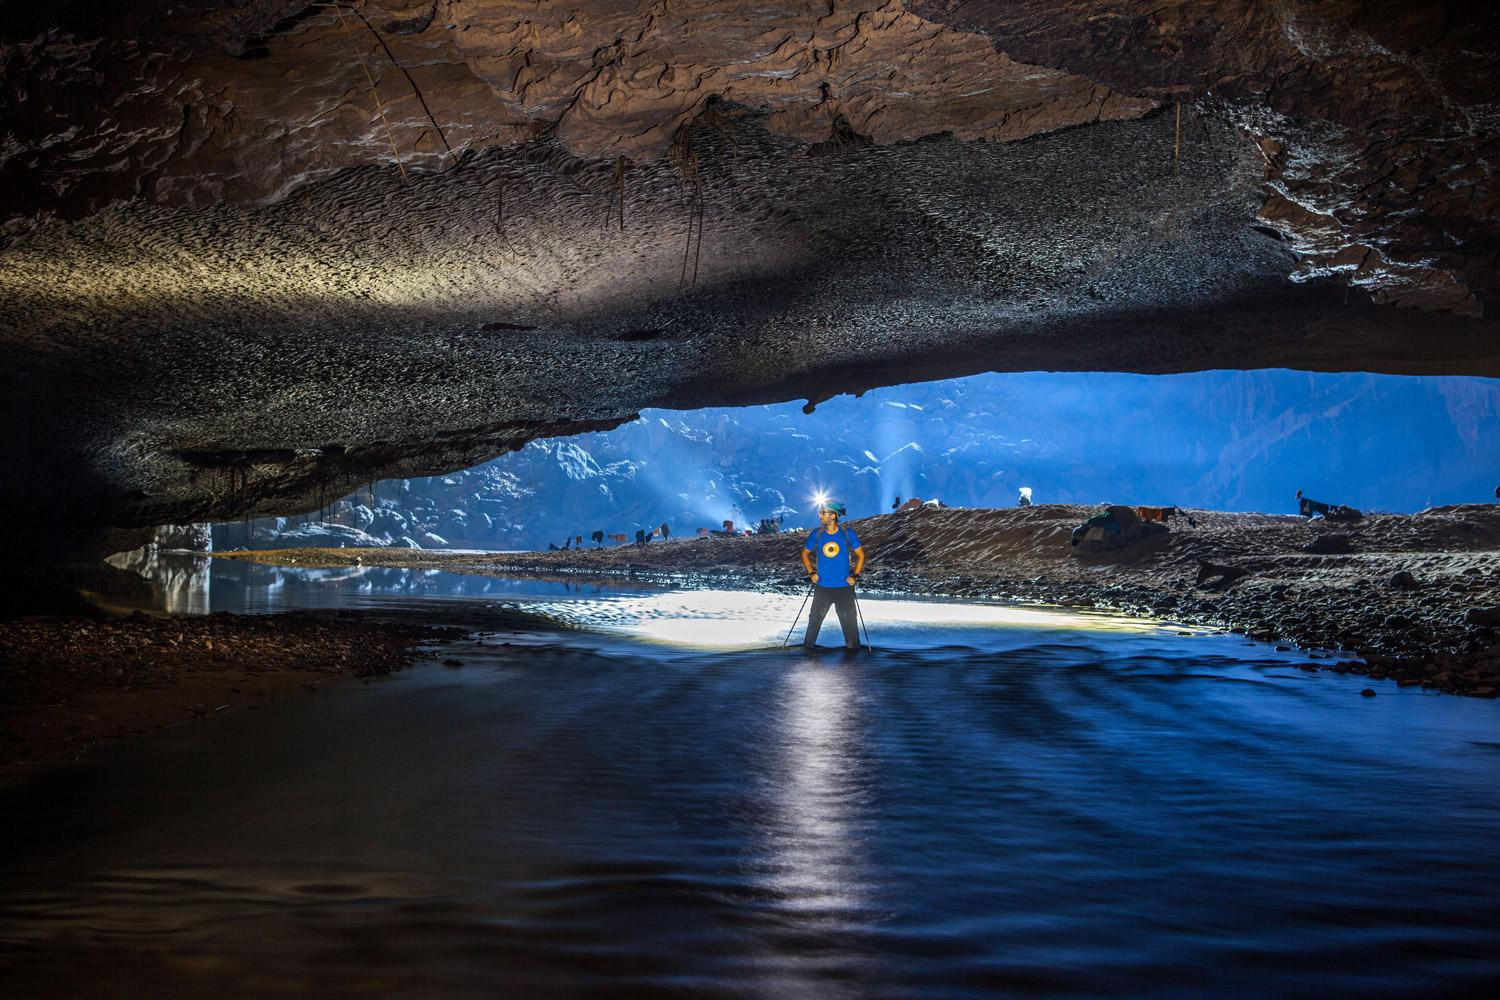 The Best Tour Hang En Cave Discovery And Camping Services - 2 days